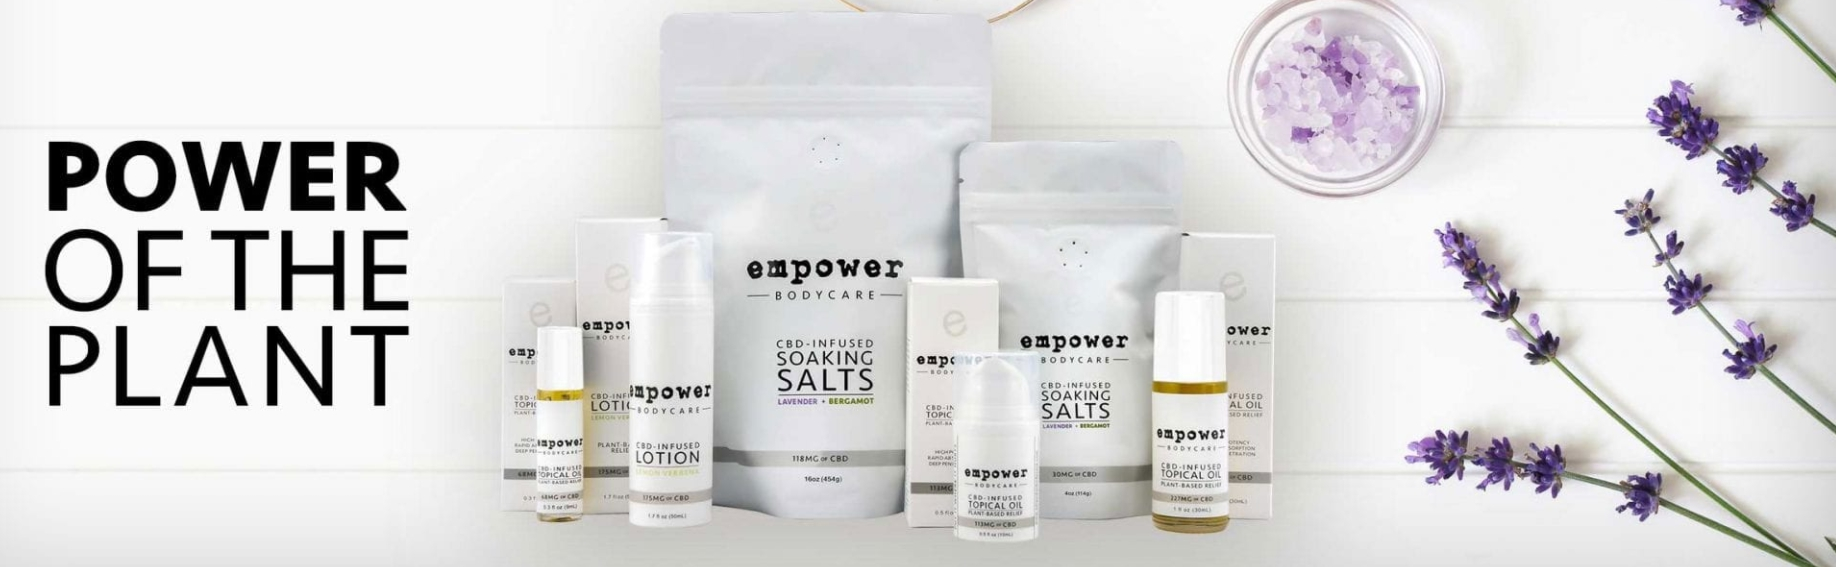 This image depicts Empower BodyCare with their line up of products